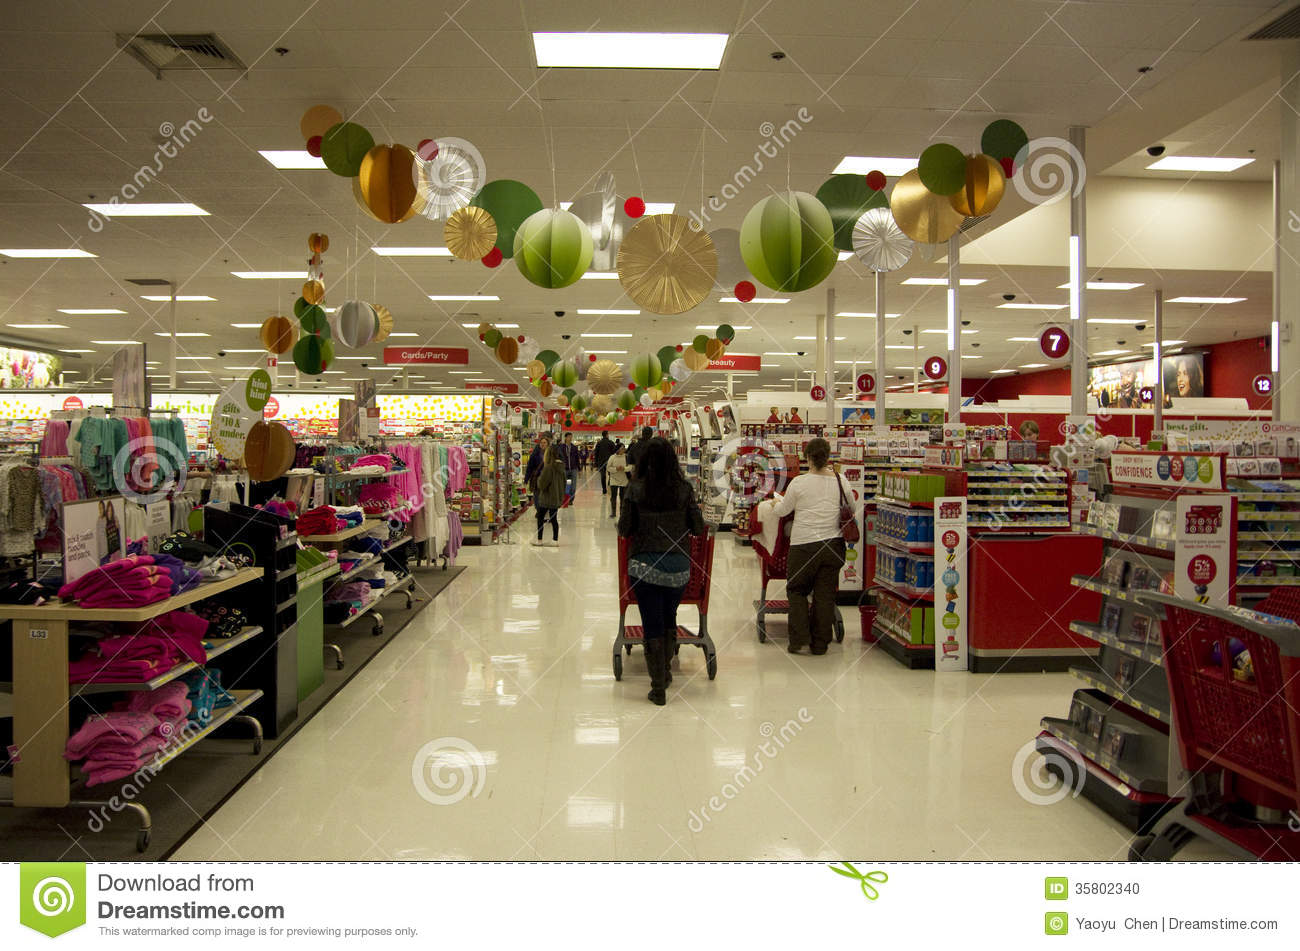 christmas decorations target - Christmas Decorations Target Stores